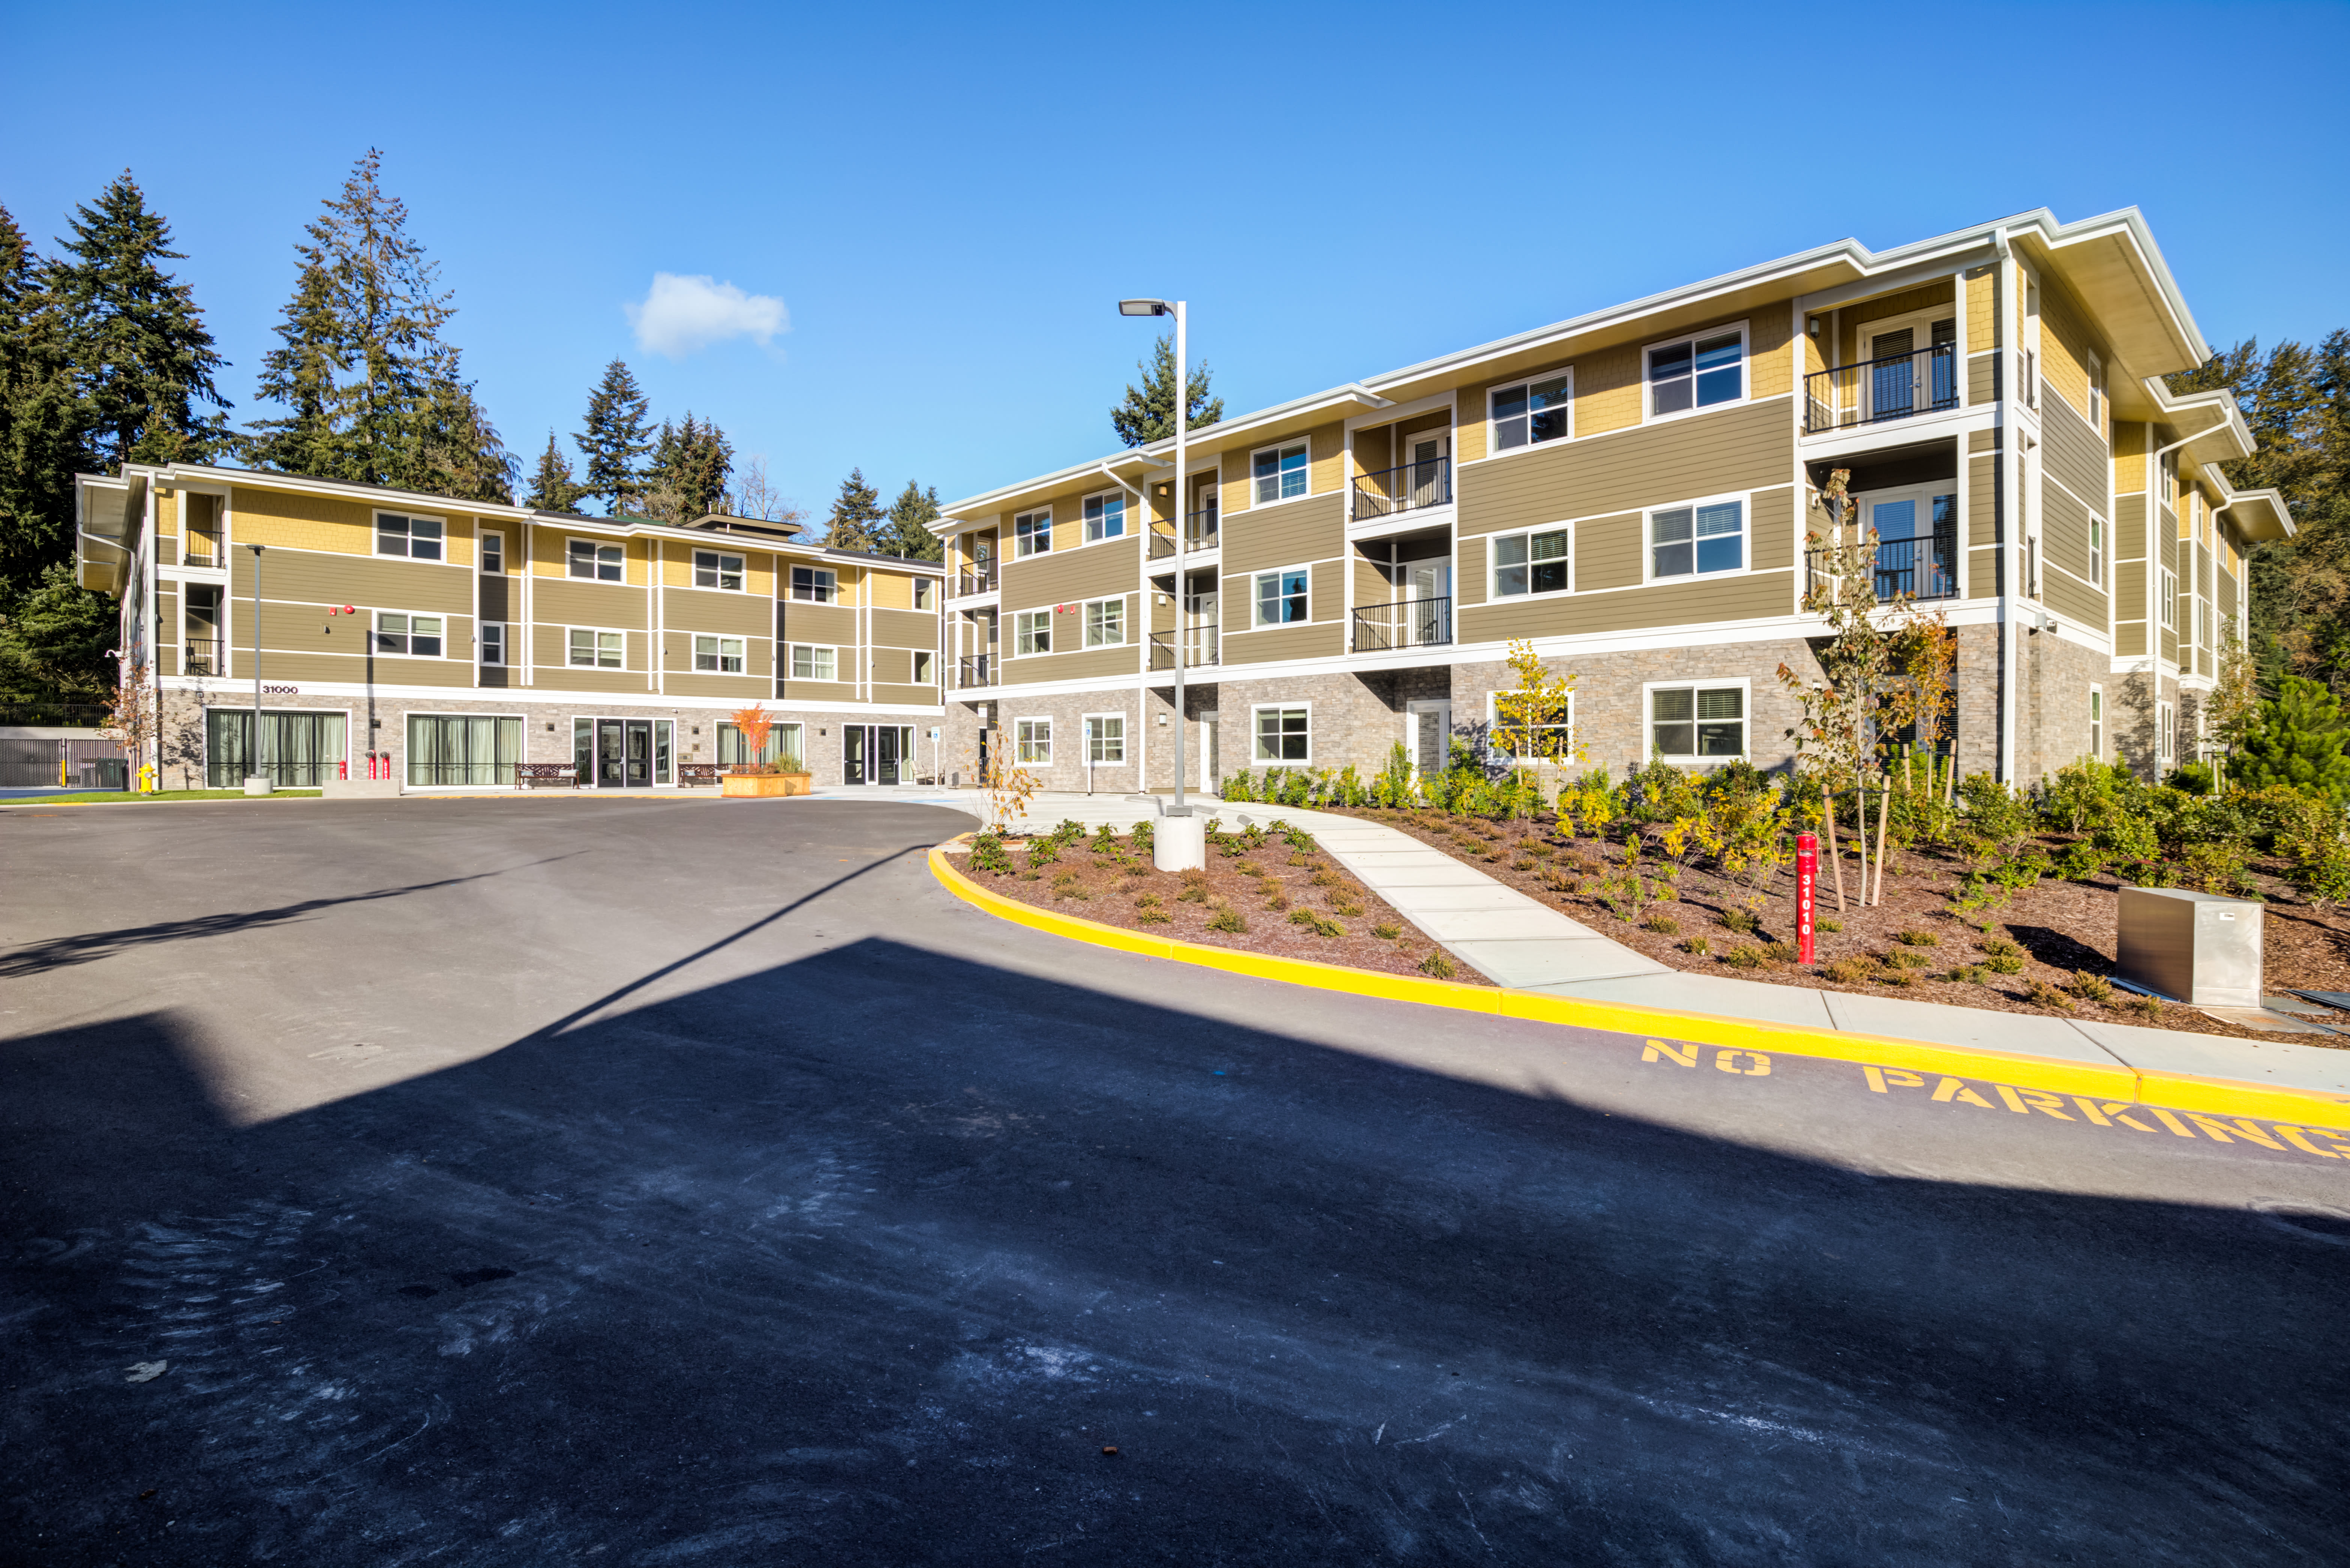 Assisted Living and Memory Care Campus at Mirror Lake Village Senior Living Community in Federal Way, WA